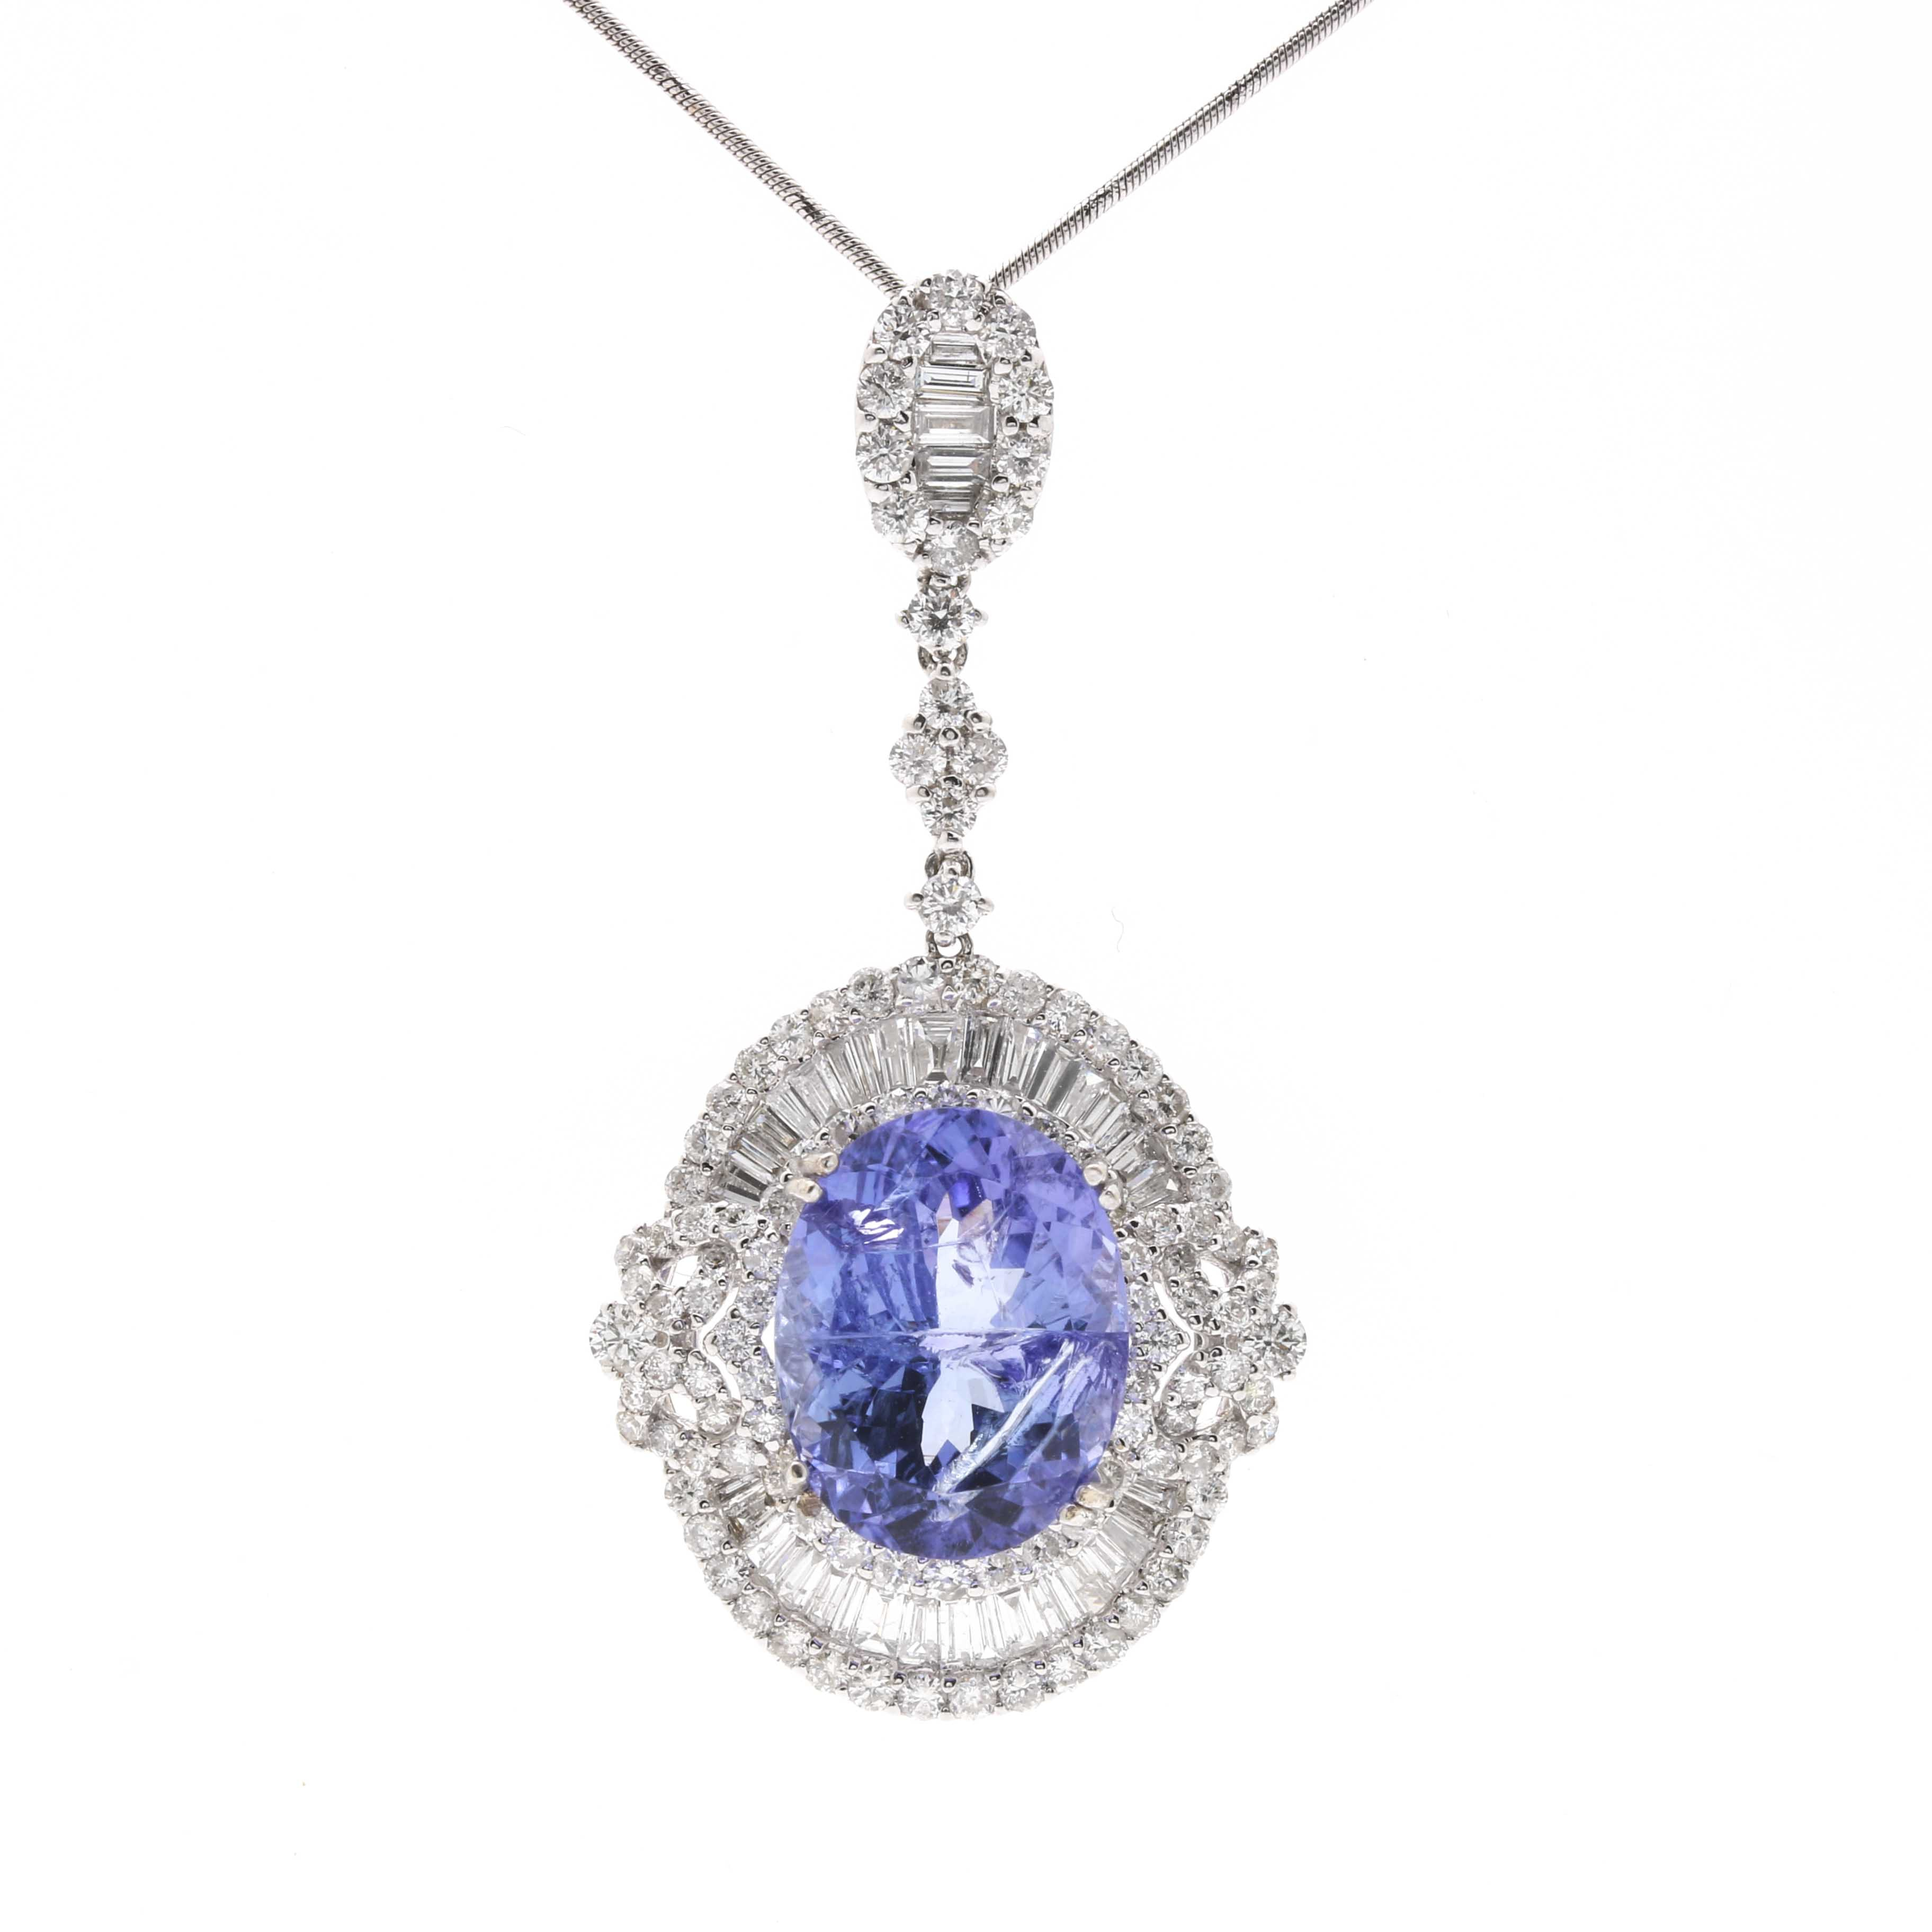 18K White Gold 7.37 CTS Tanzanite and 2.97 CTW Diamond Necklace